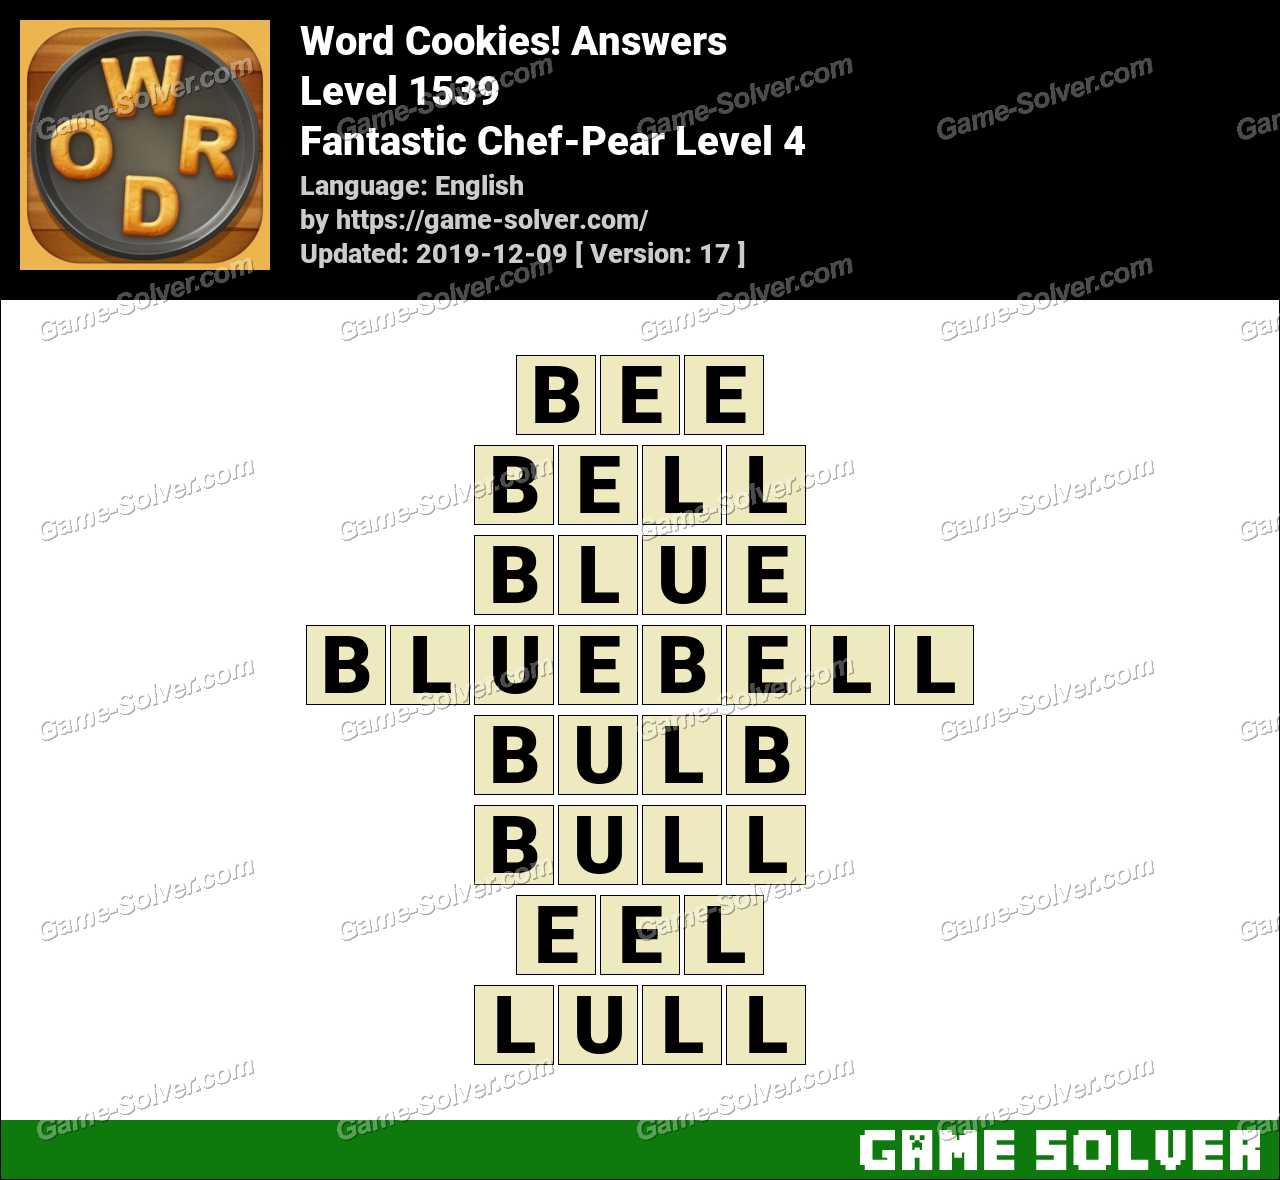 Word Cookies Fantastic Chef-Pear Level 4 Answers